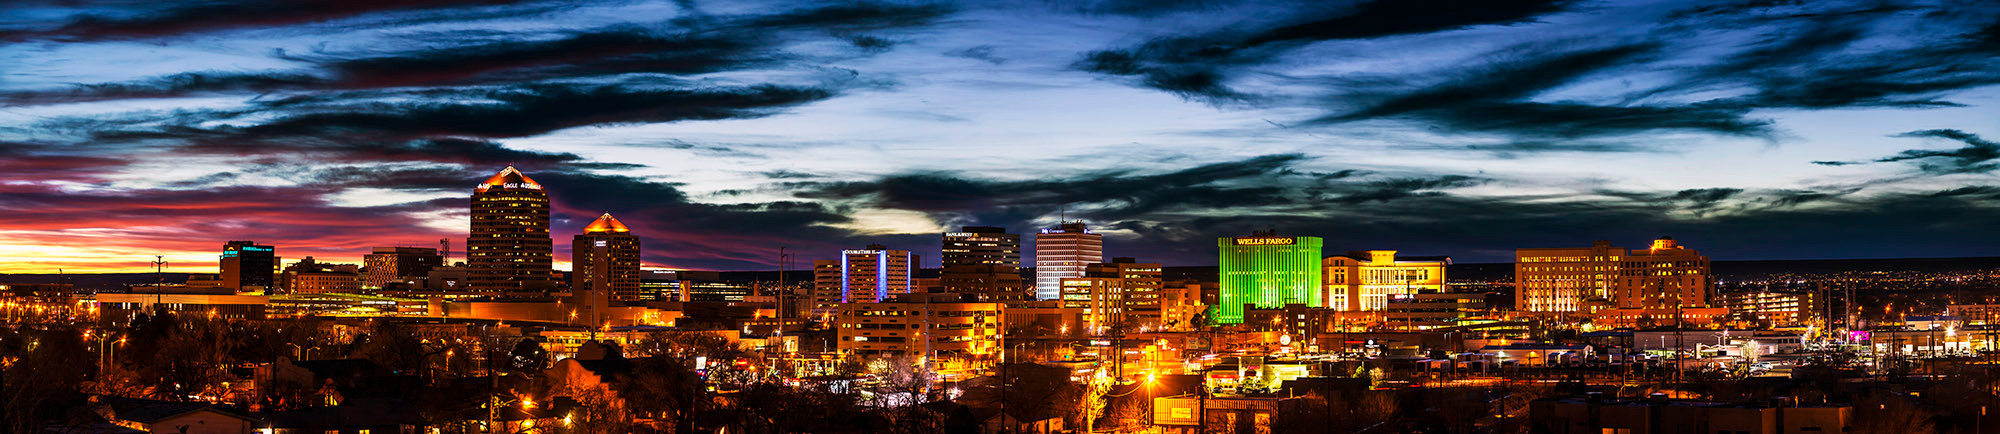 Downtown ABQ at night